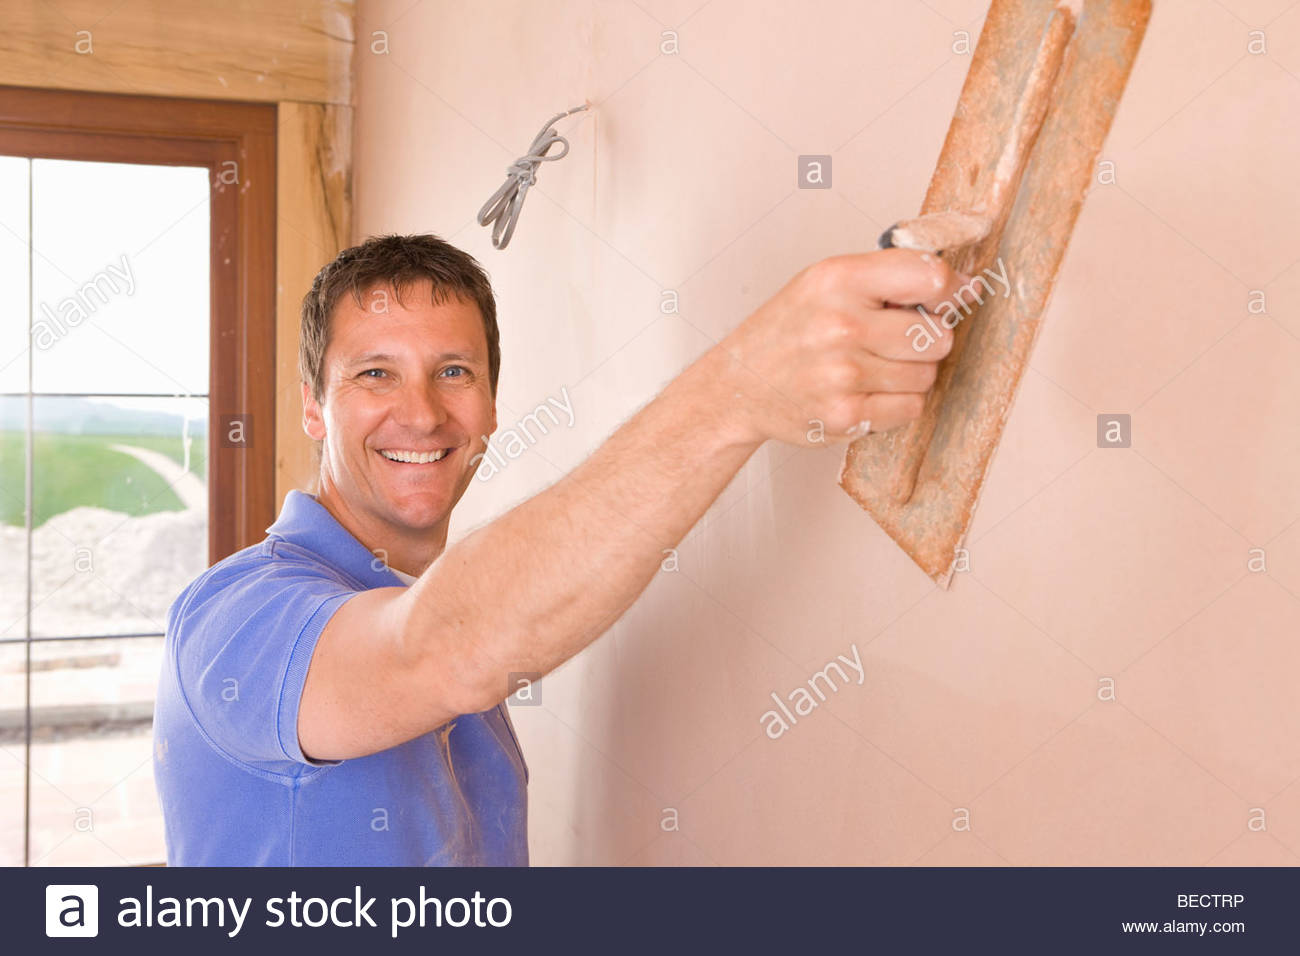 Man plastering wall with trowel Stock Photo